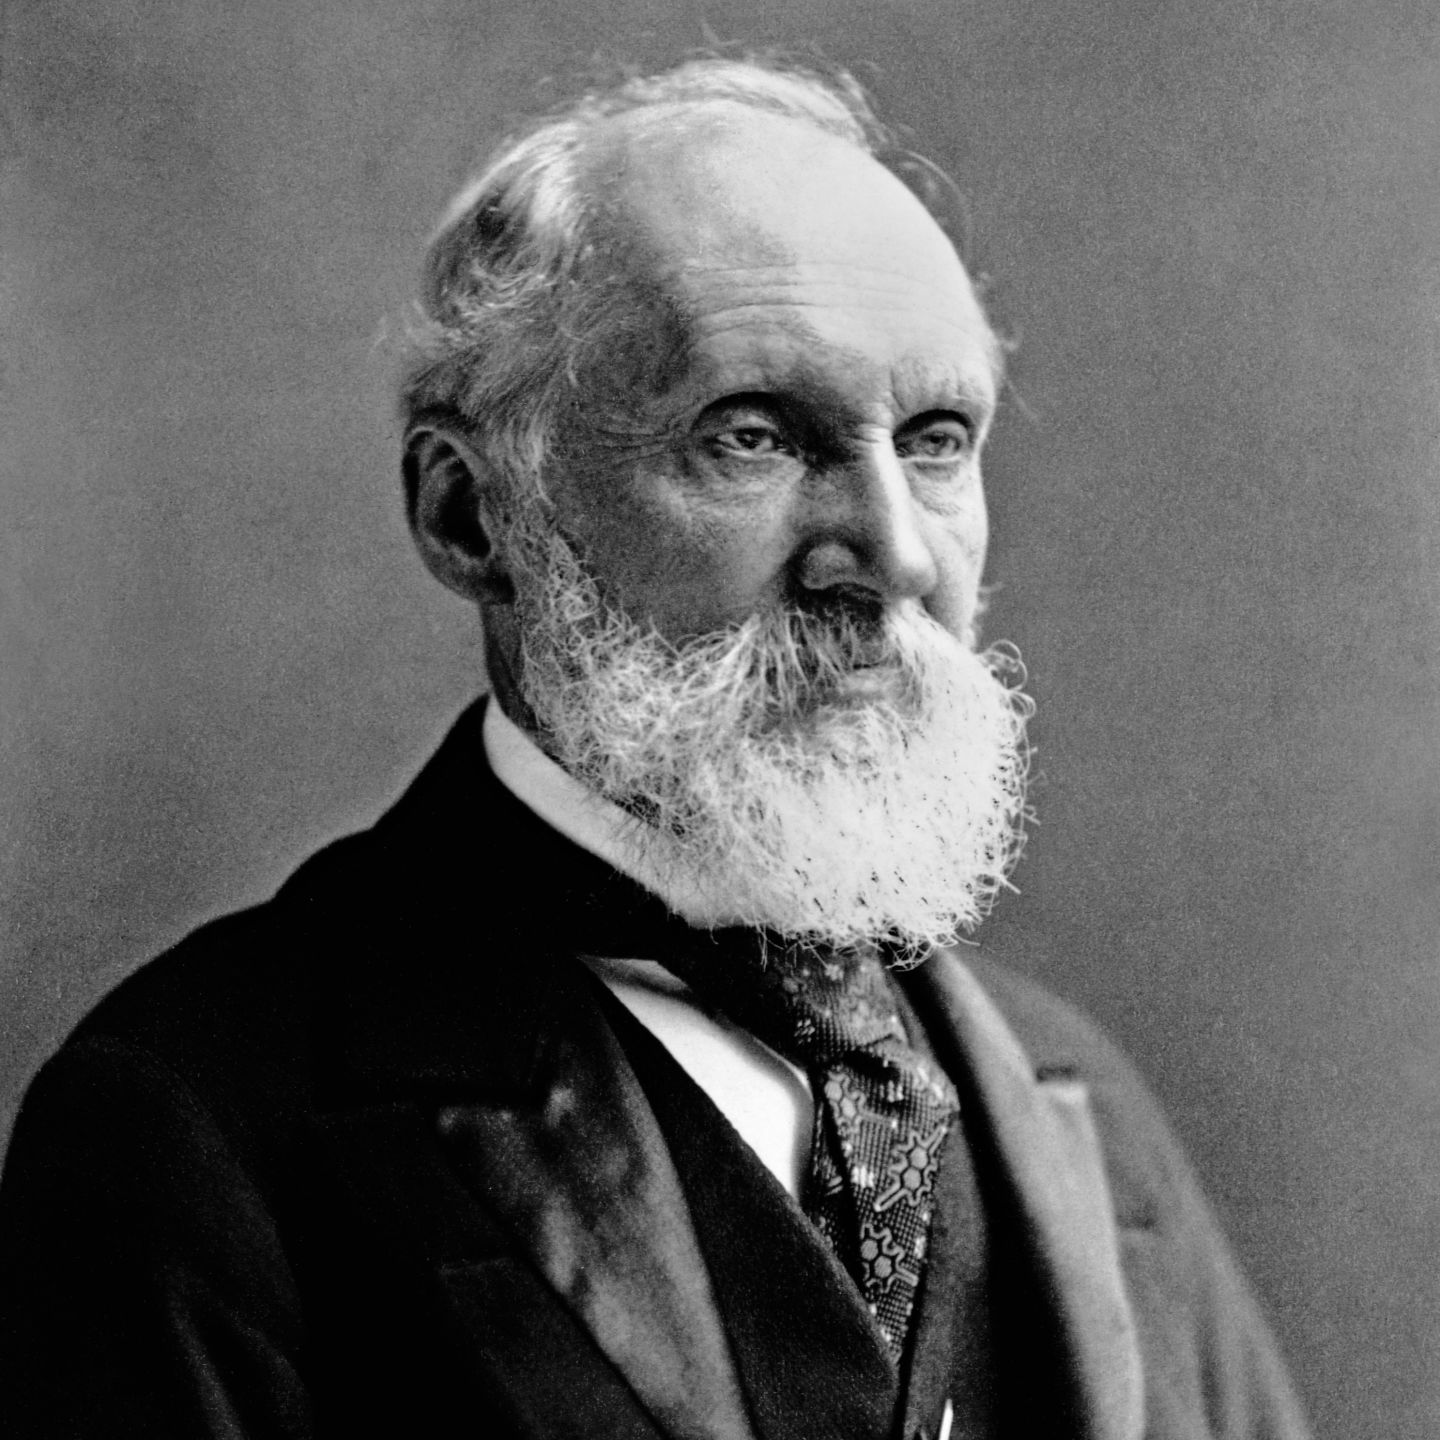 the life of william thompson lord kelvin Reviewed by rochelle caviness - may 31, 2011 the life of lord kelvin is the most detailed and comprehensive biography of william thomson [lord kelvin] that is currently available.